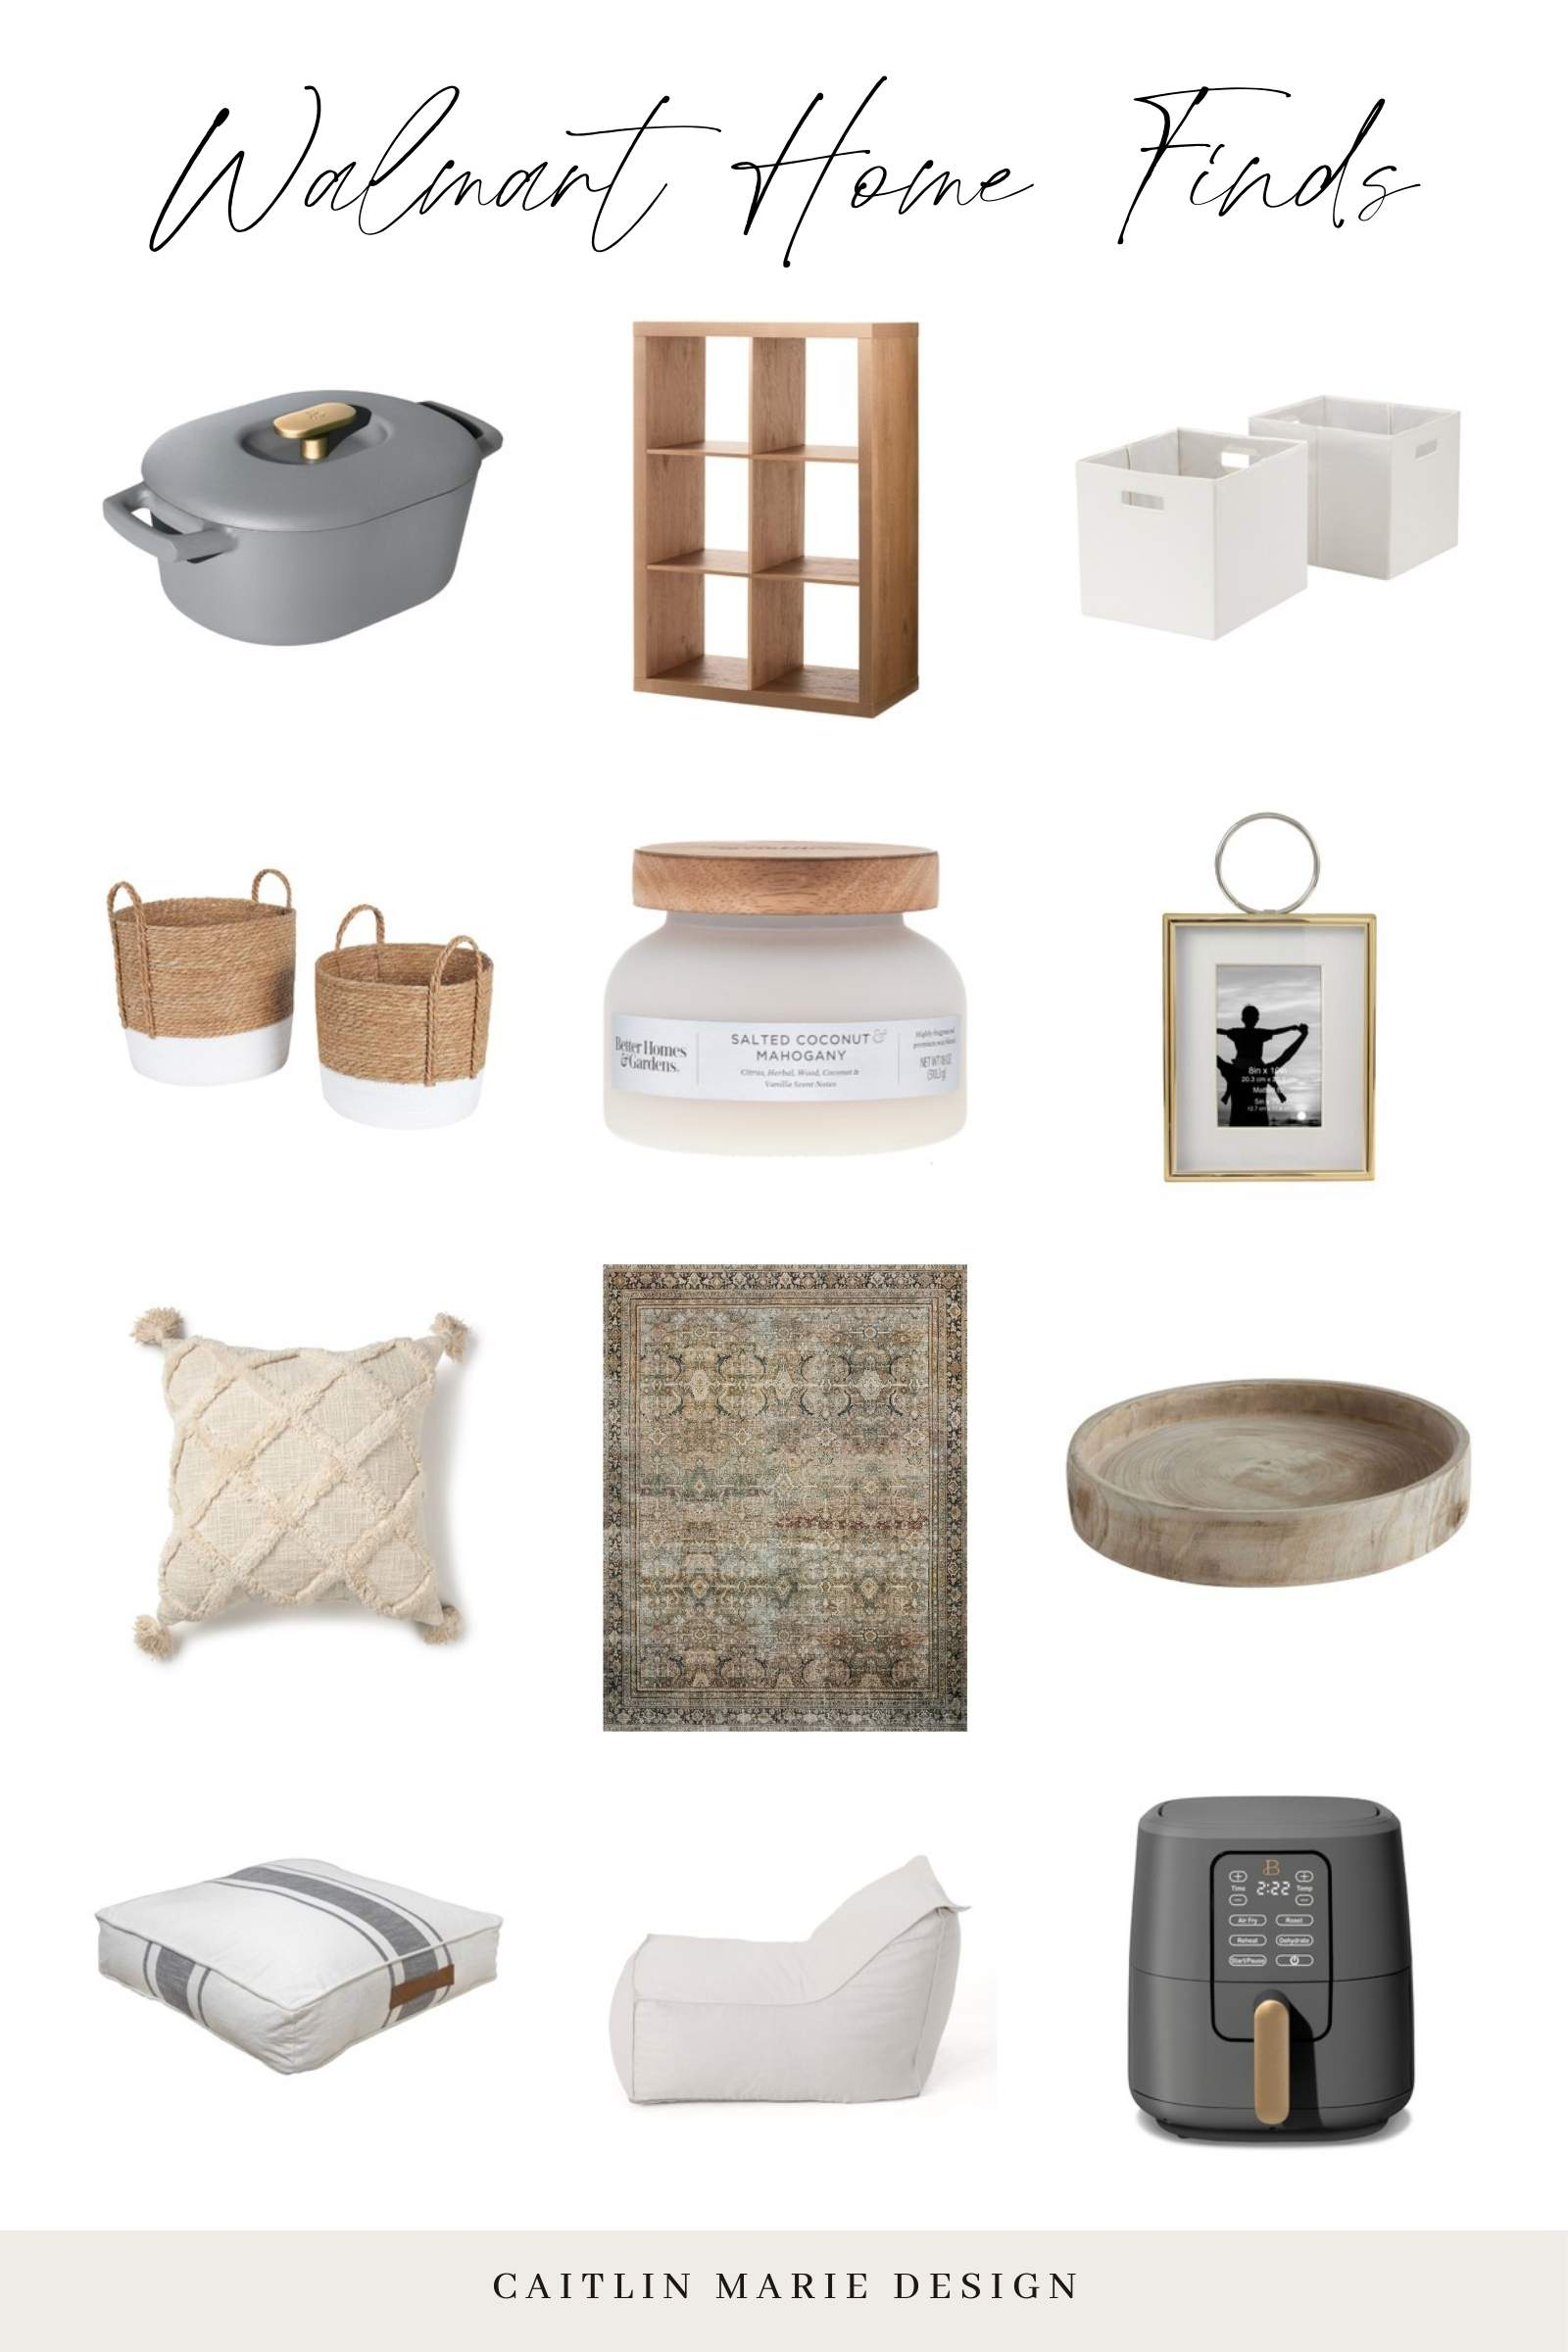 Walmart home finds - beautiful air fryer drew Barrymore, budget friendly storage baskets, loloi Layla olive charcoal, pillow